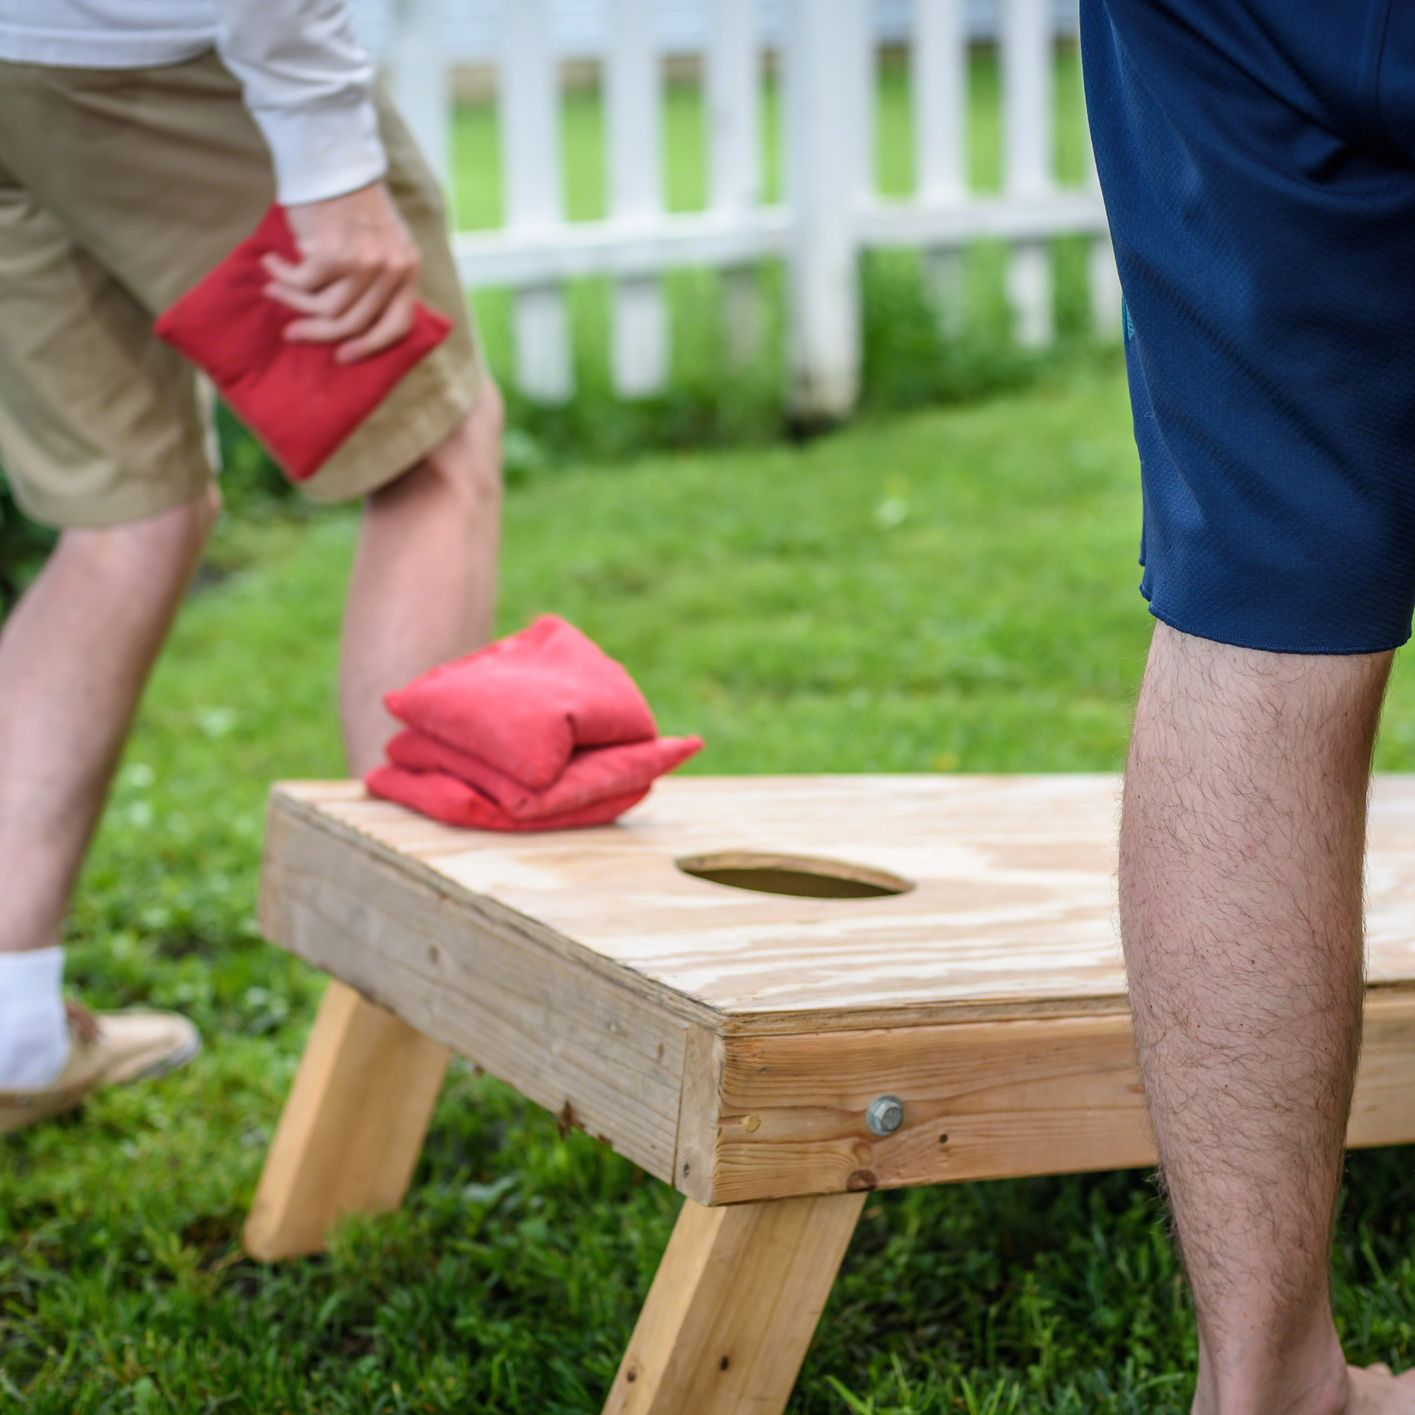 23 Outdoor Games for Adults to Play During the Next Kid-Free Barbecue